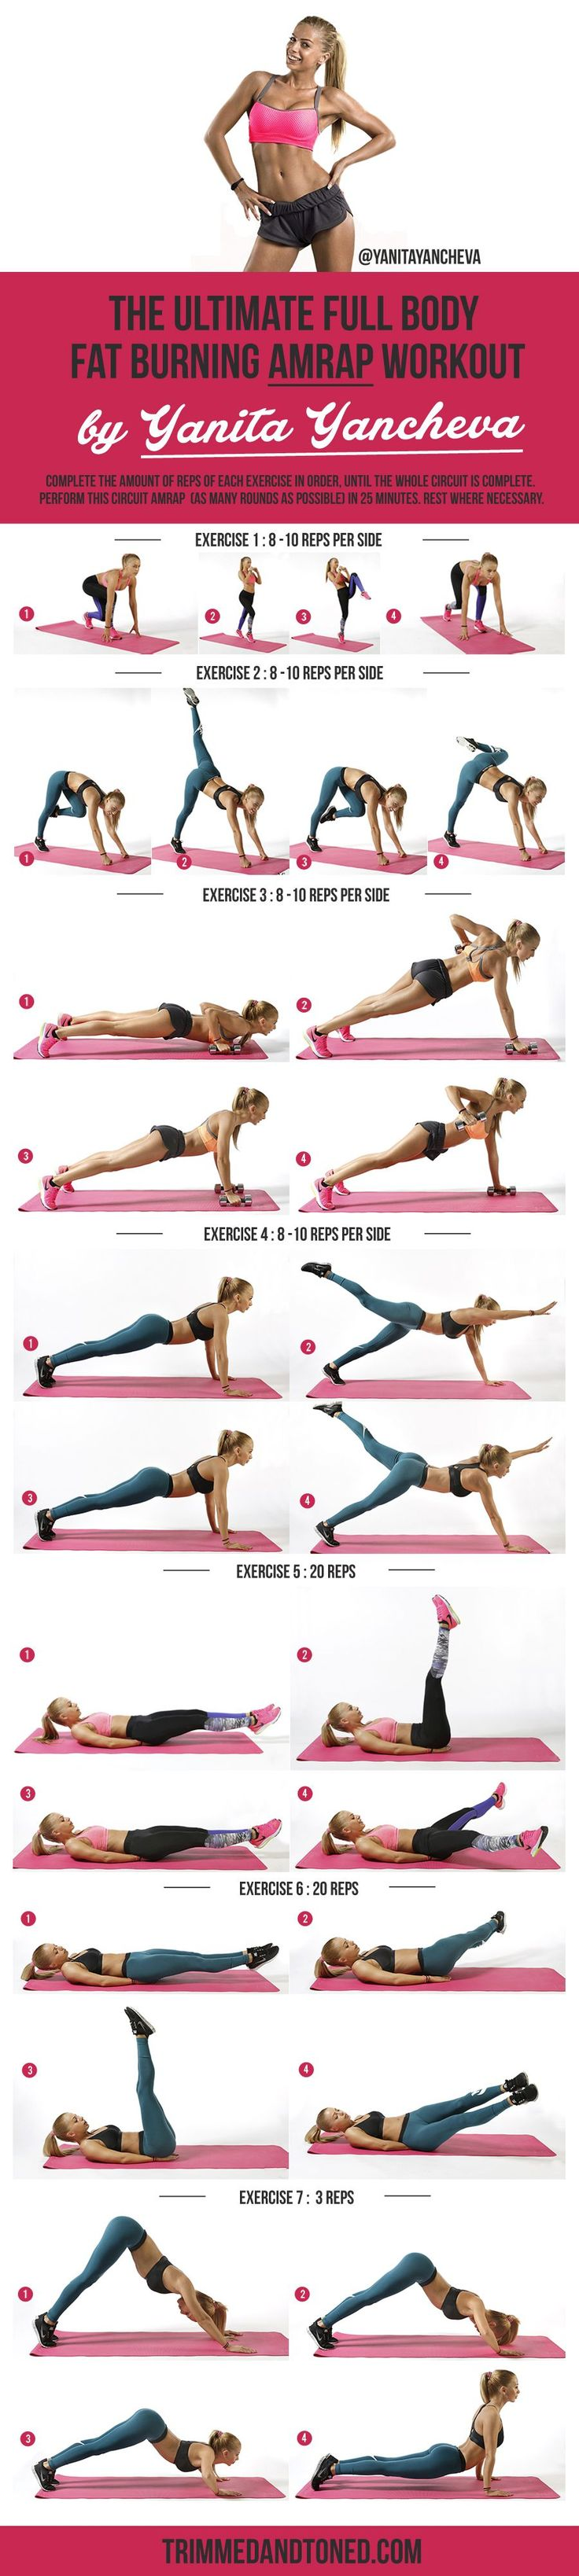 Yanita-Full-Body-Amrap-Workout